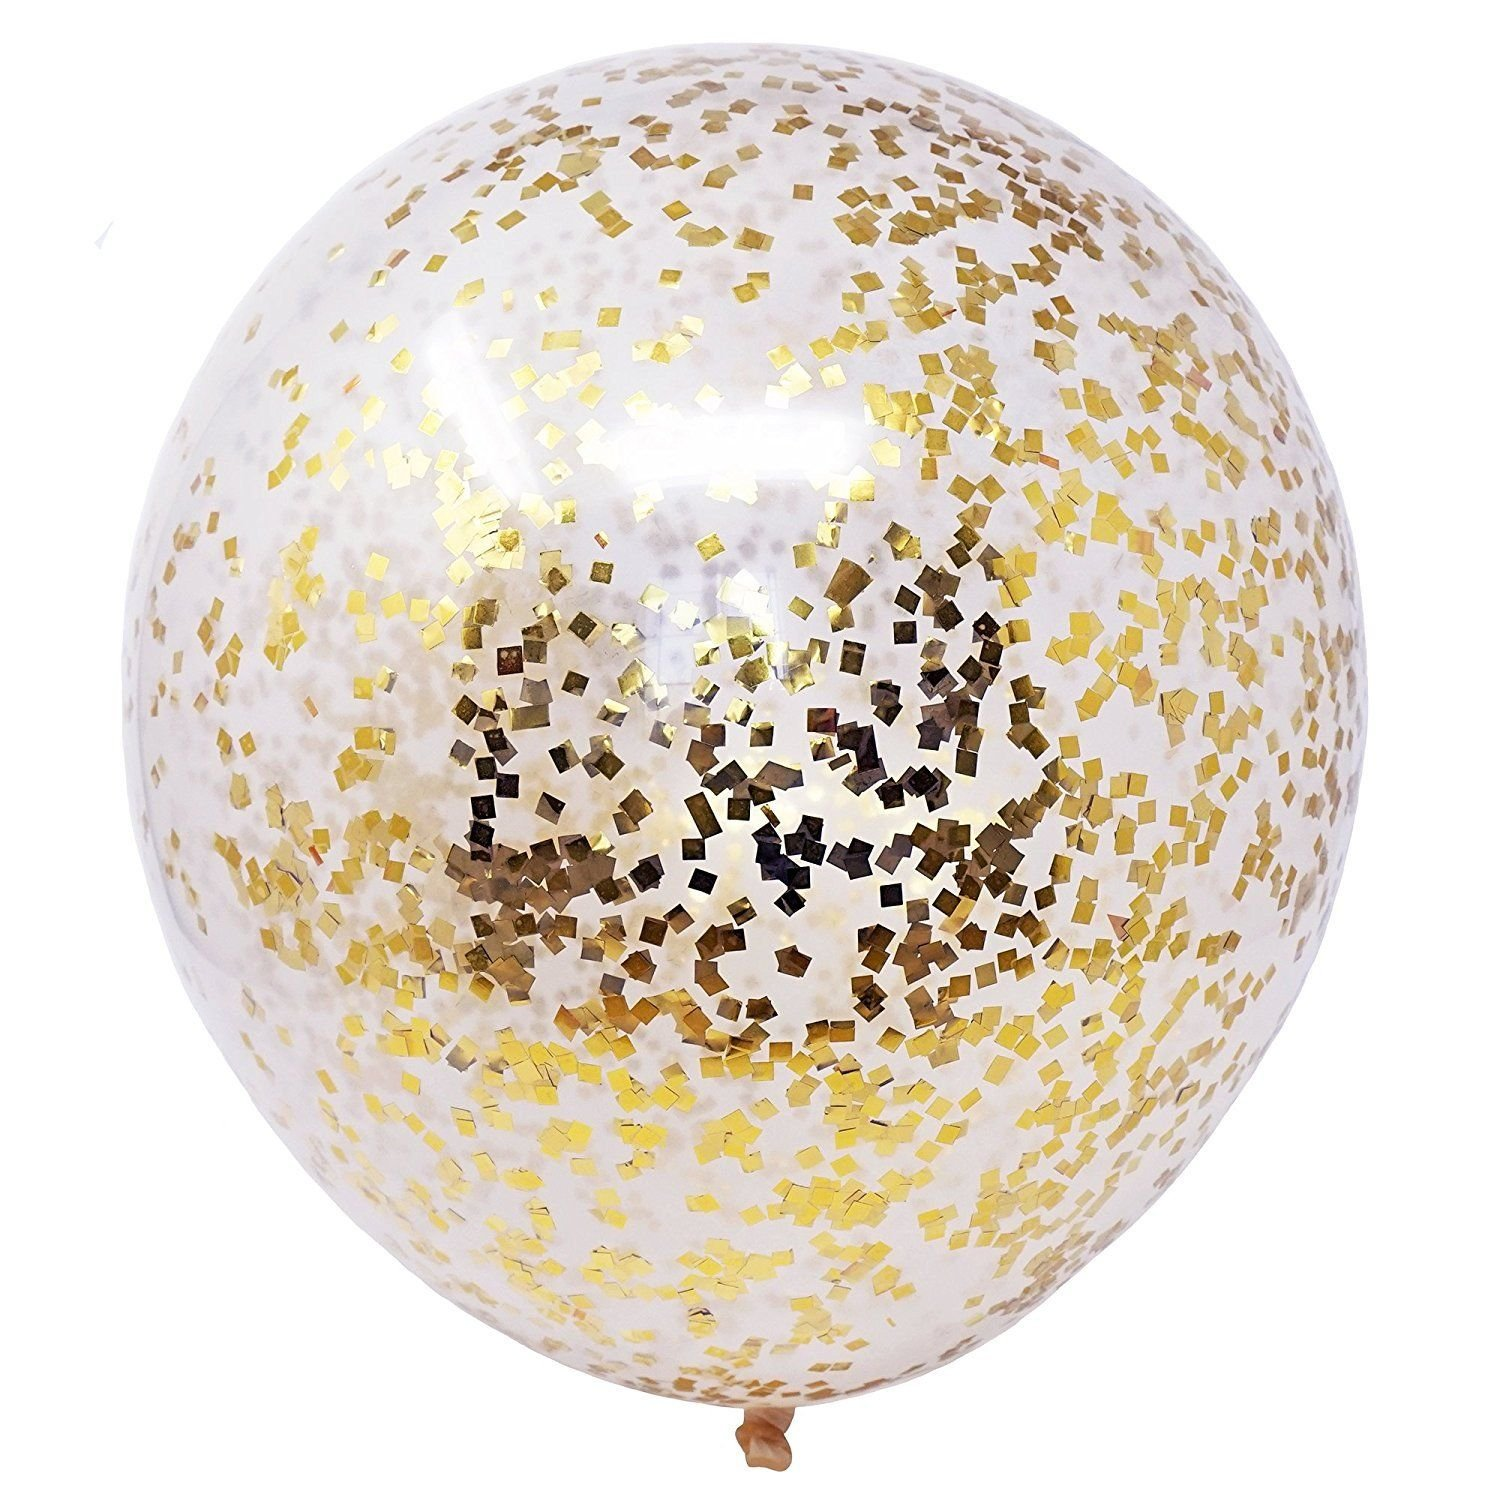 6 Gold Flakes Confetti Clear White Balloons 18'' DIY Kit 50g Confetti Party Decor